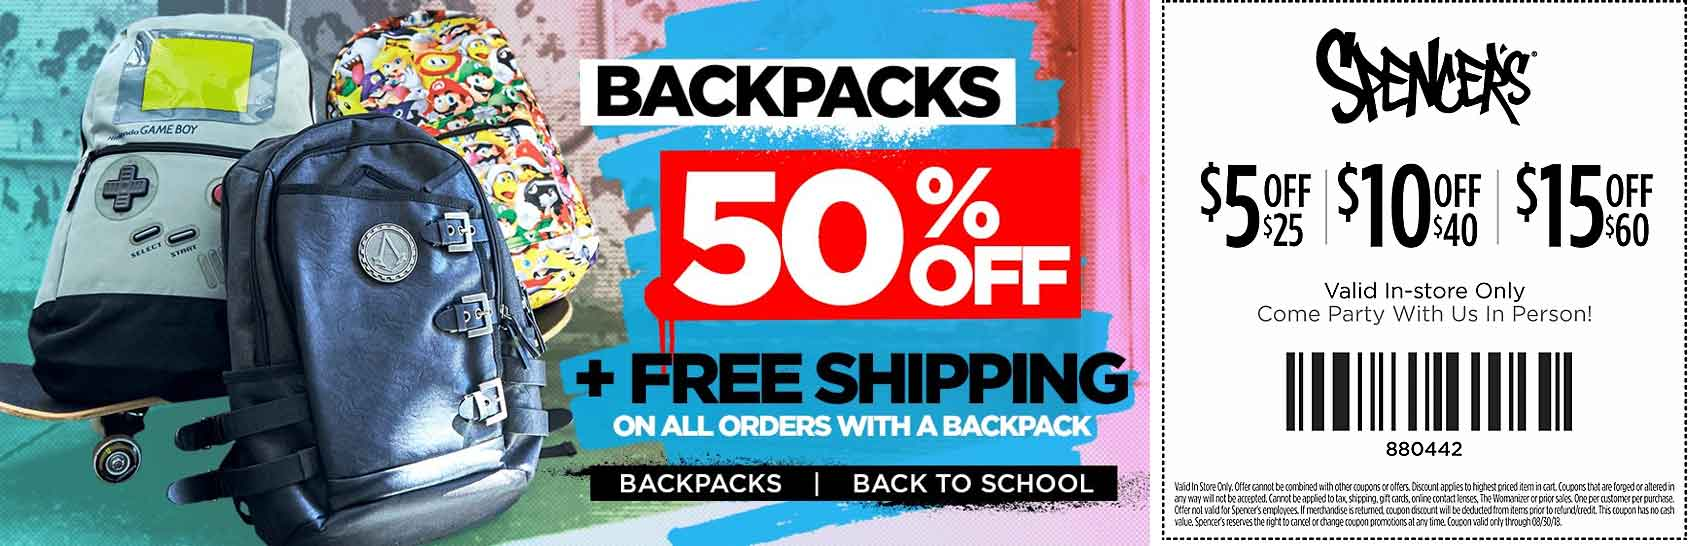 Spencers coupons & promo code for [June 2020]